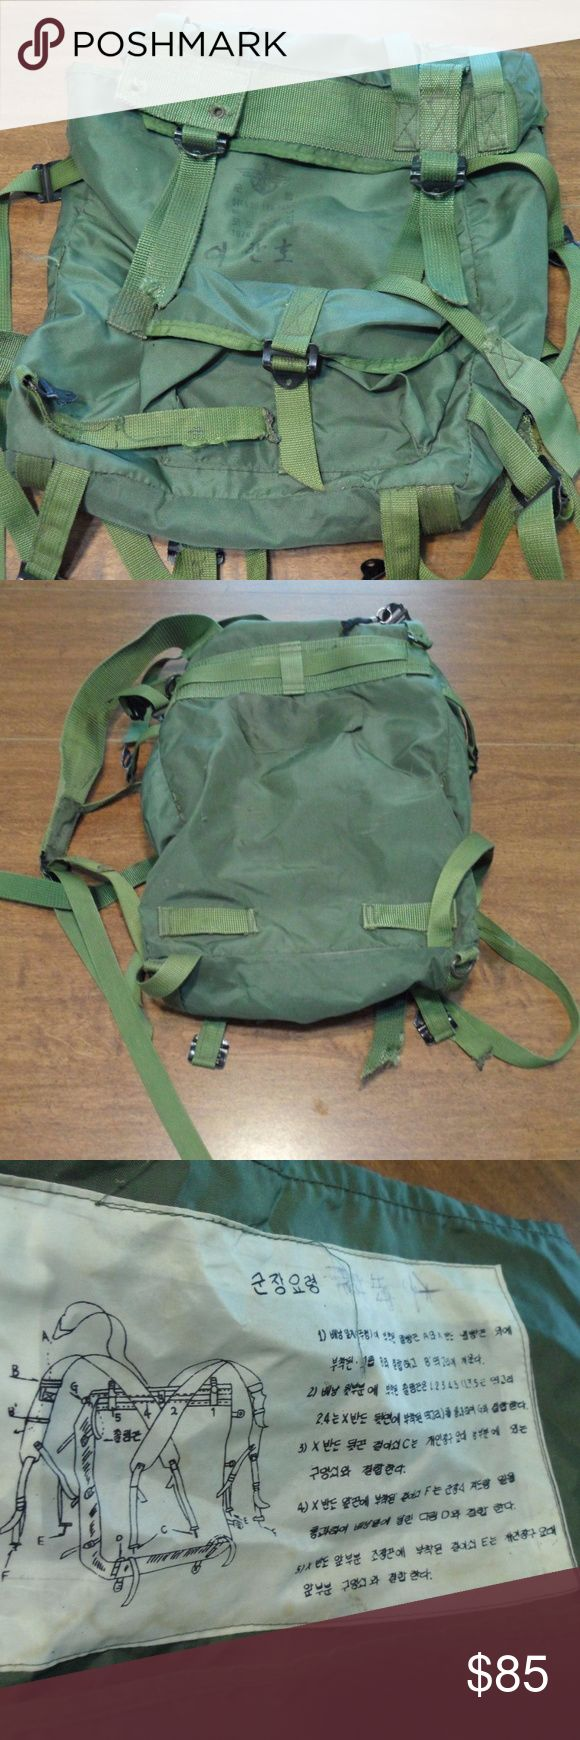 AUTHENTIC US ARMY SOLDIER BACKPACK RETIRED Given to me by a US soldier in South Korea. His job, from the small amount he told me, was to watch the sky for any incoming attack from North Korea of any kind.  The backpack is standard issue for the army going to that location.  In perfect condition. A million straps and pockets for everything you need. Army green, sturdy, durable, longlasting (3 words which are all synomyms should give you an ok idea of how tough this item is. While very sturdy…